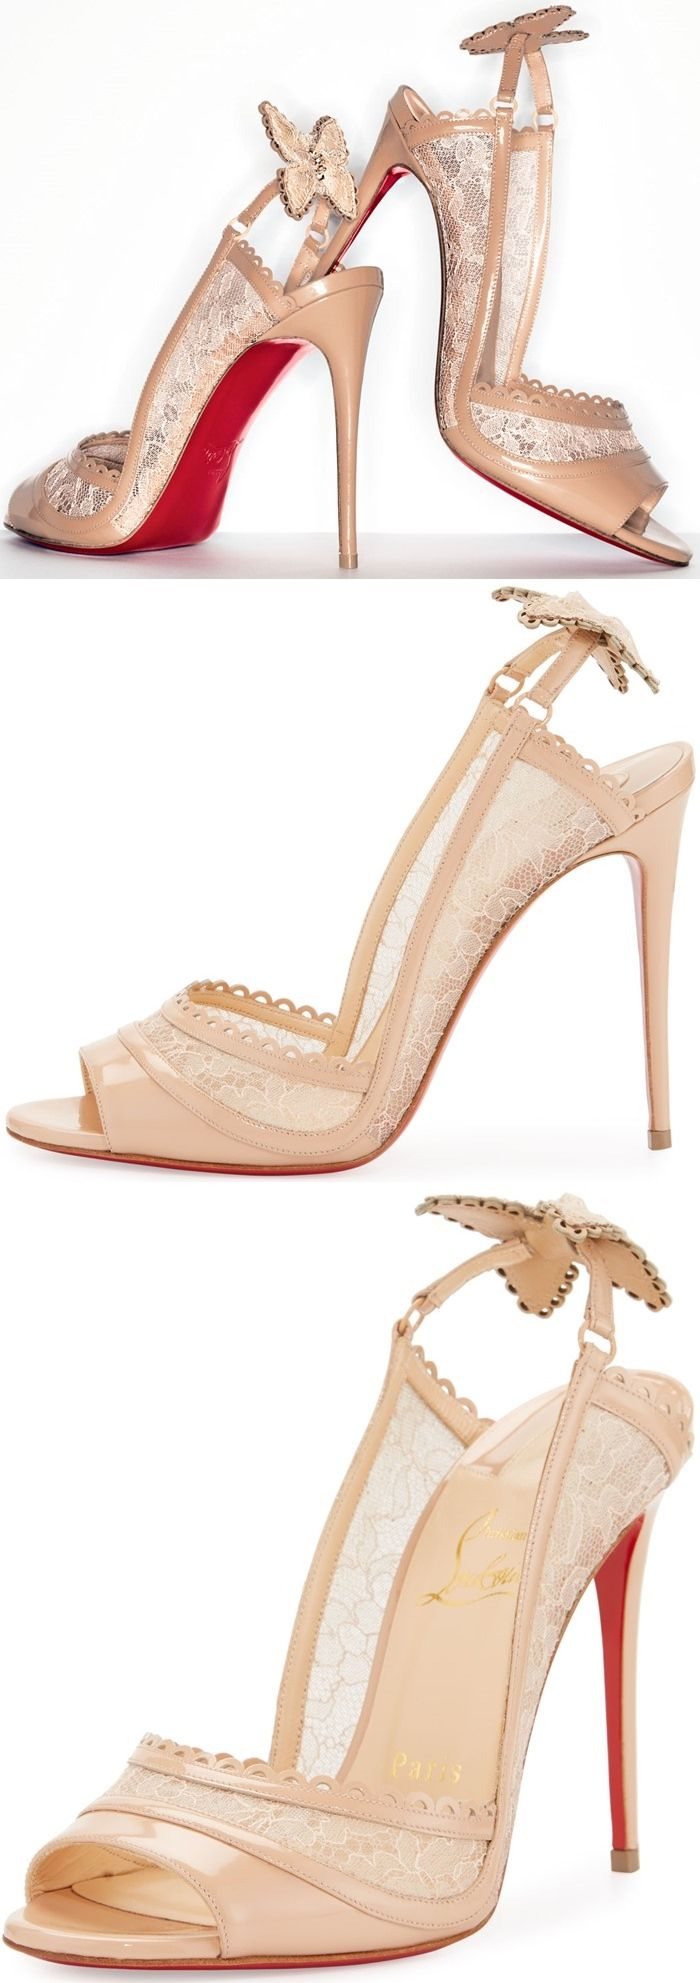 Christian Louboutin 'Hot Spring Butterfly' 100mm Red Sole Pumps